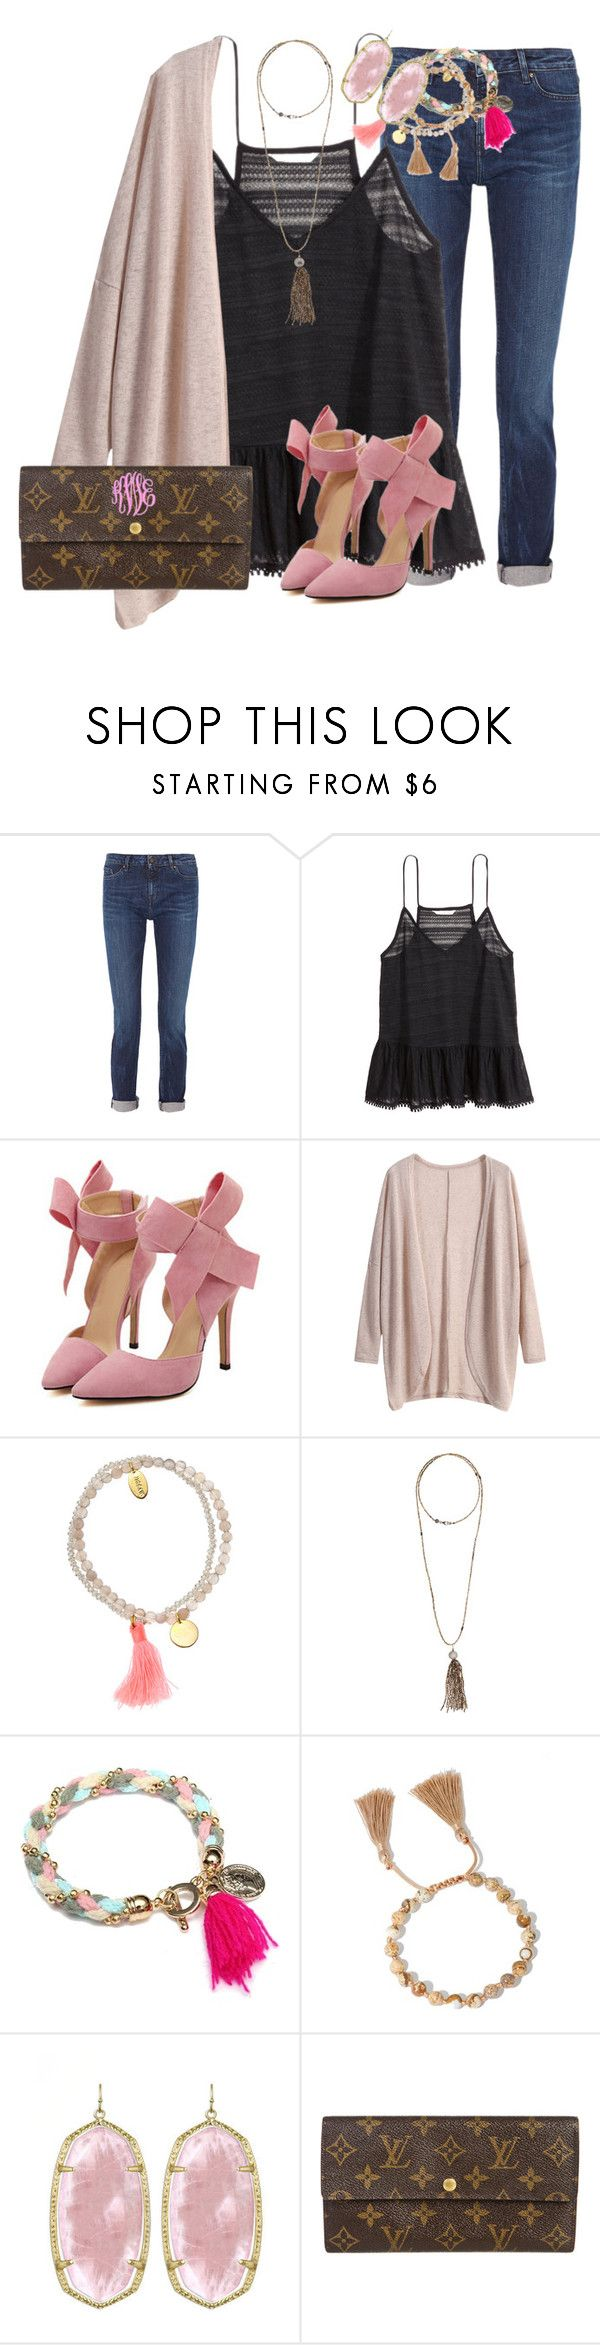 """""""the insta """"4whitepeople"""" cracks me up"""" by thefashionbyem ❤ liked on Polyvore featuring Karl Lagerfeld, H&M, Jigsaw, Bettina Duncan, Kendra Scott and Louis Vuitton"""